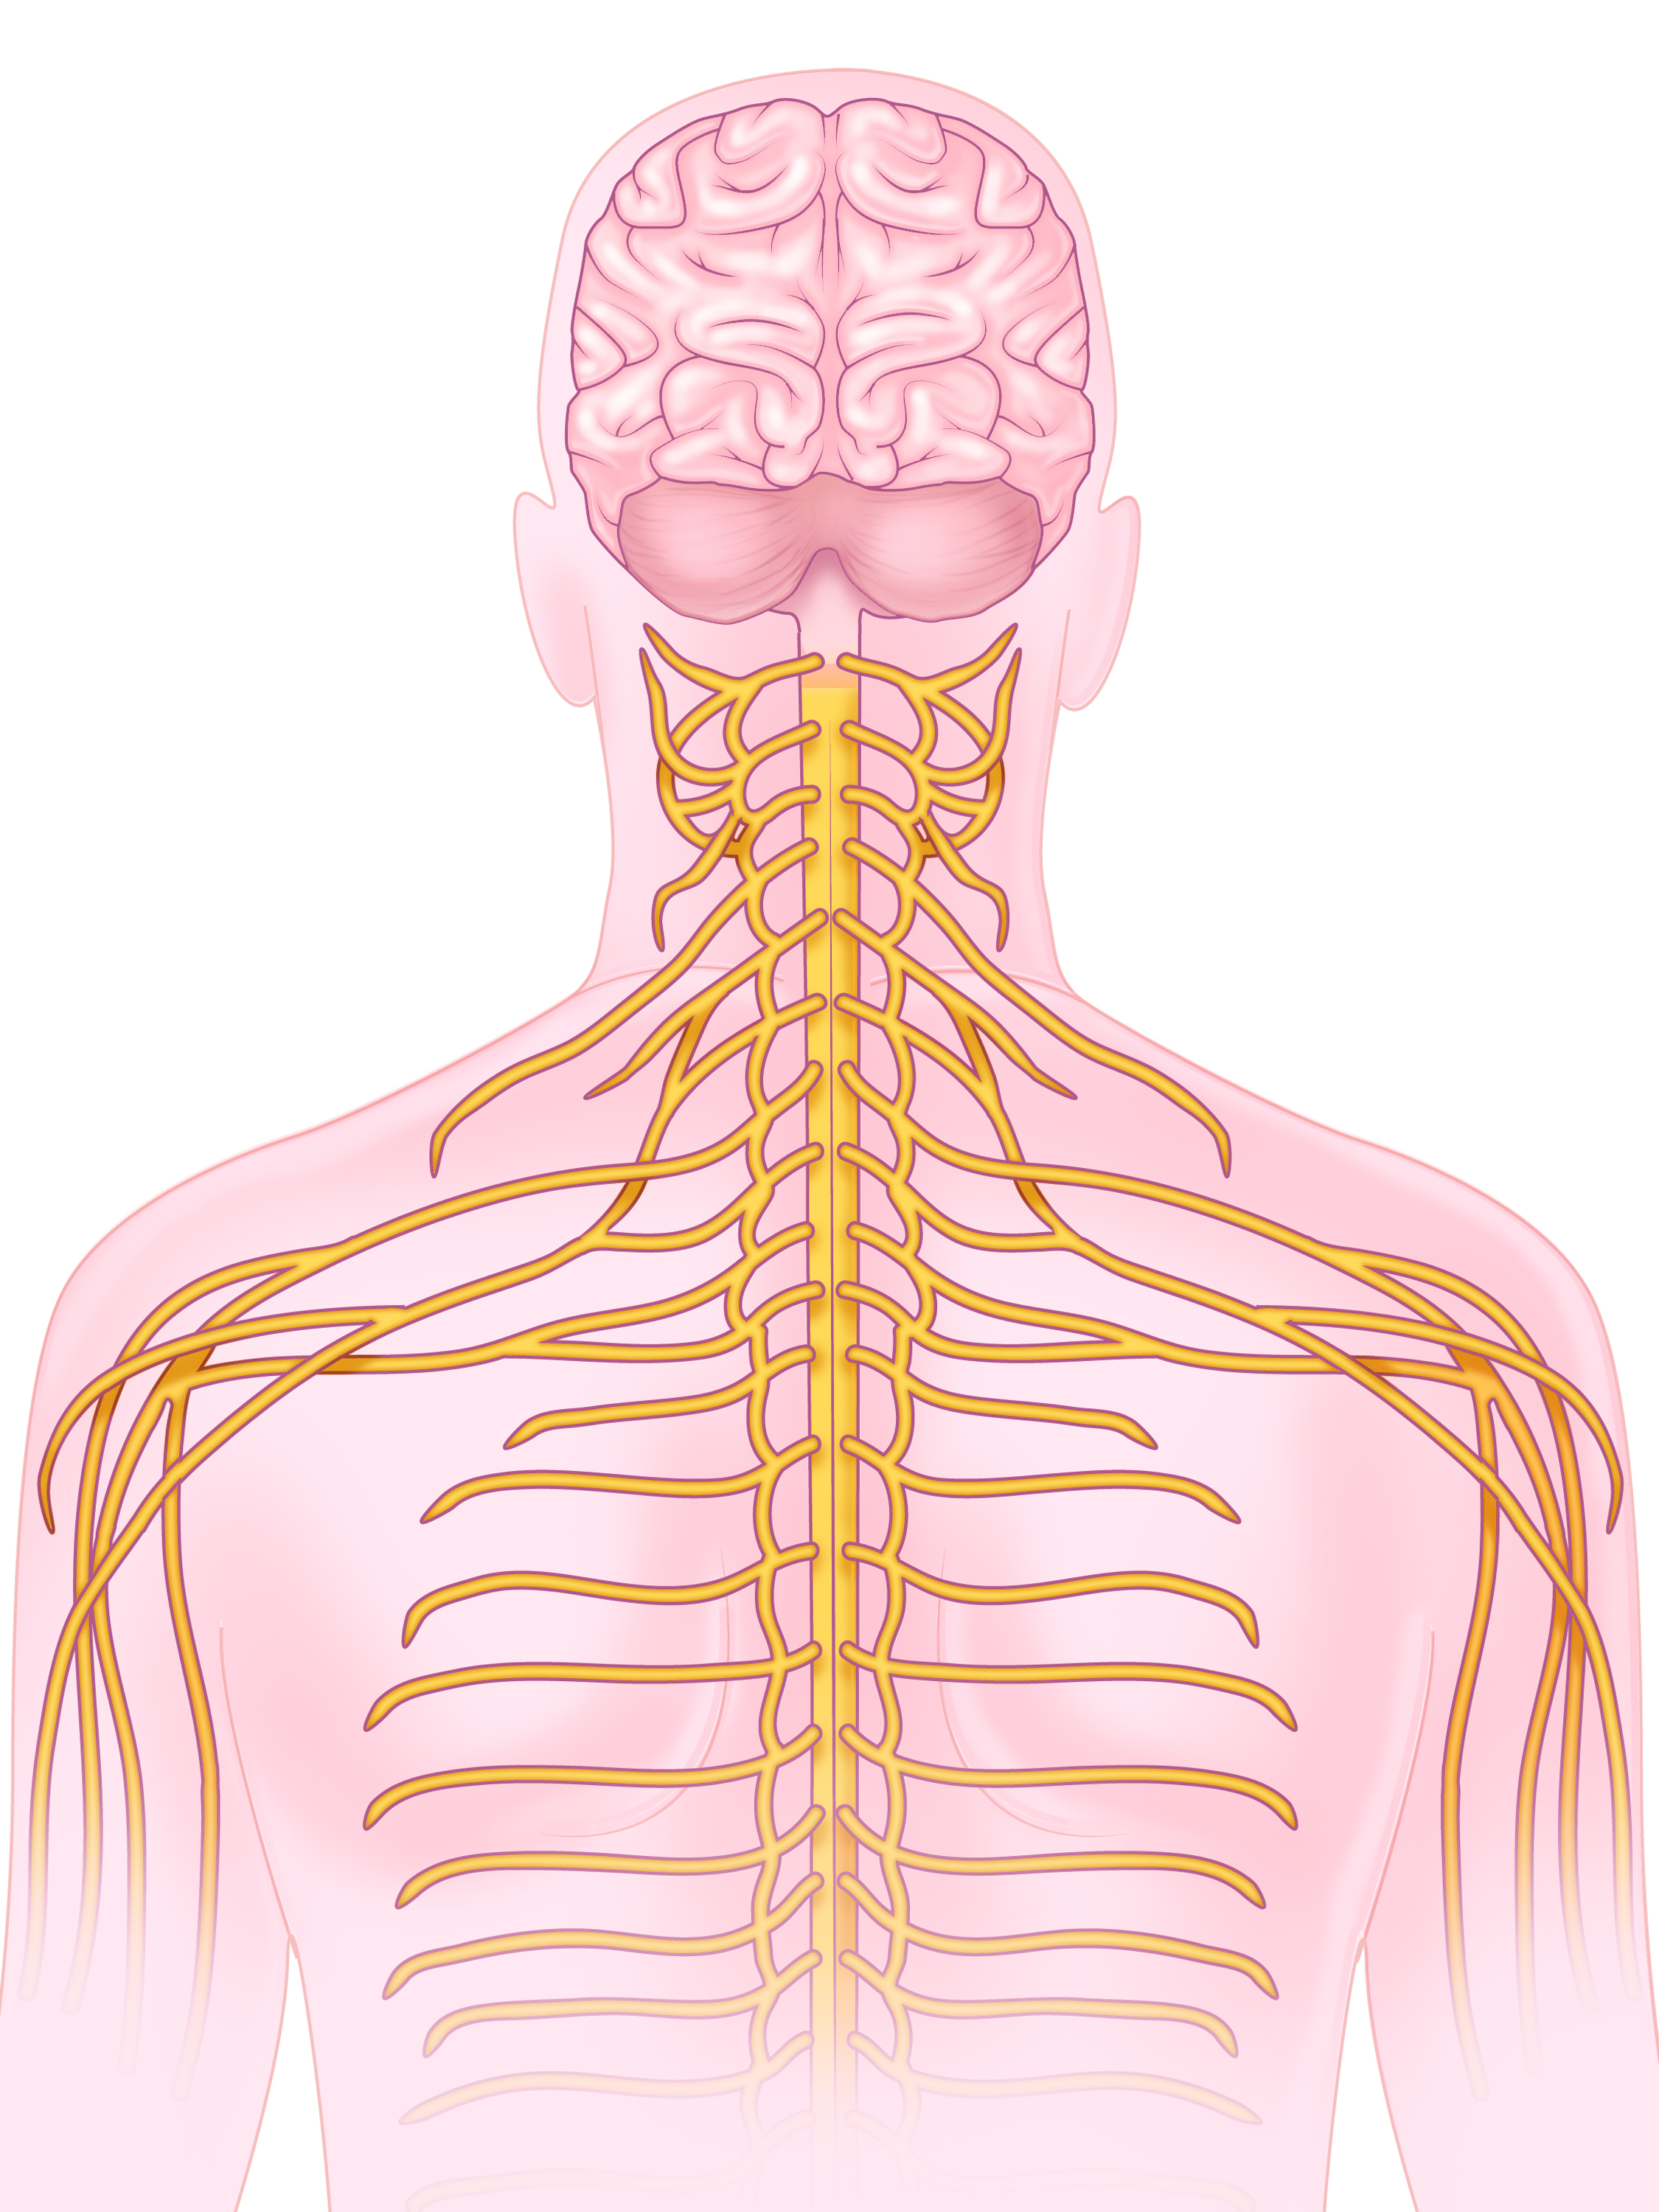 Image created in collaboration with the Division of Anatomical Sciences, Dept. of Surgery at the University of Michigan.